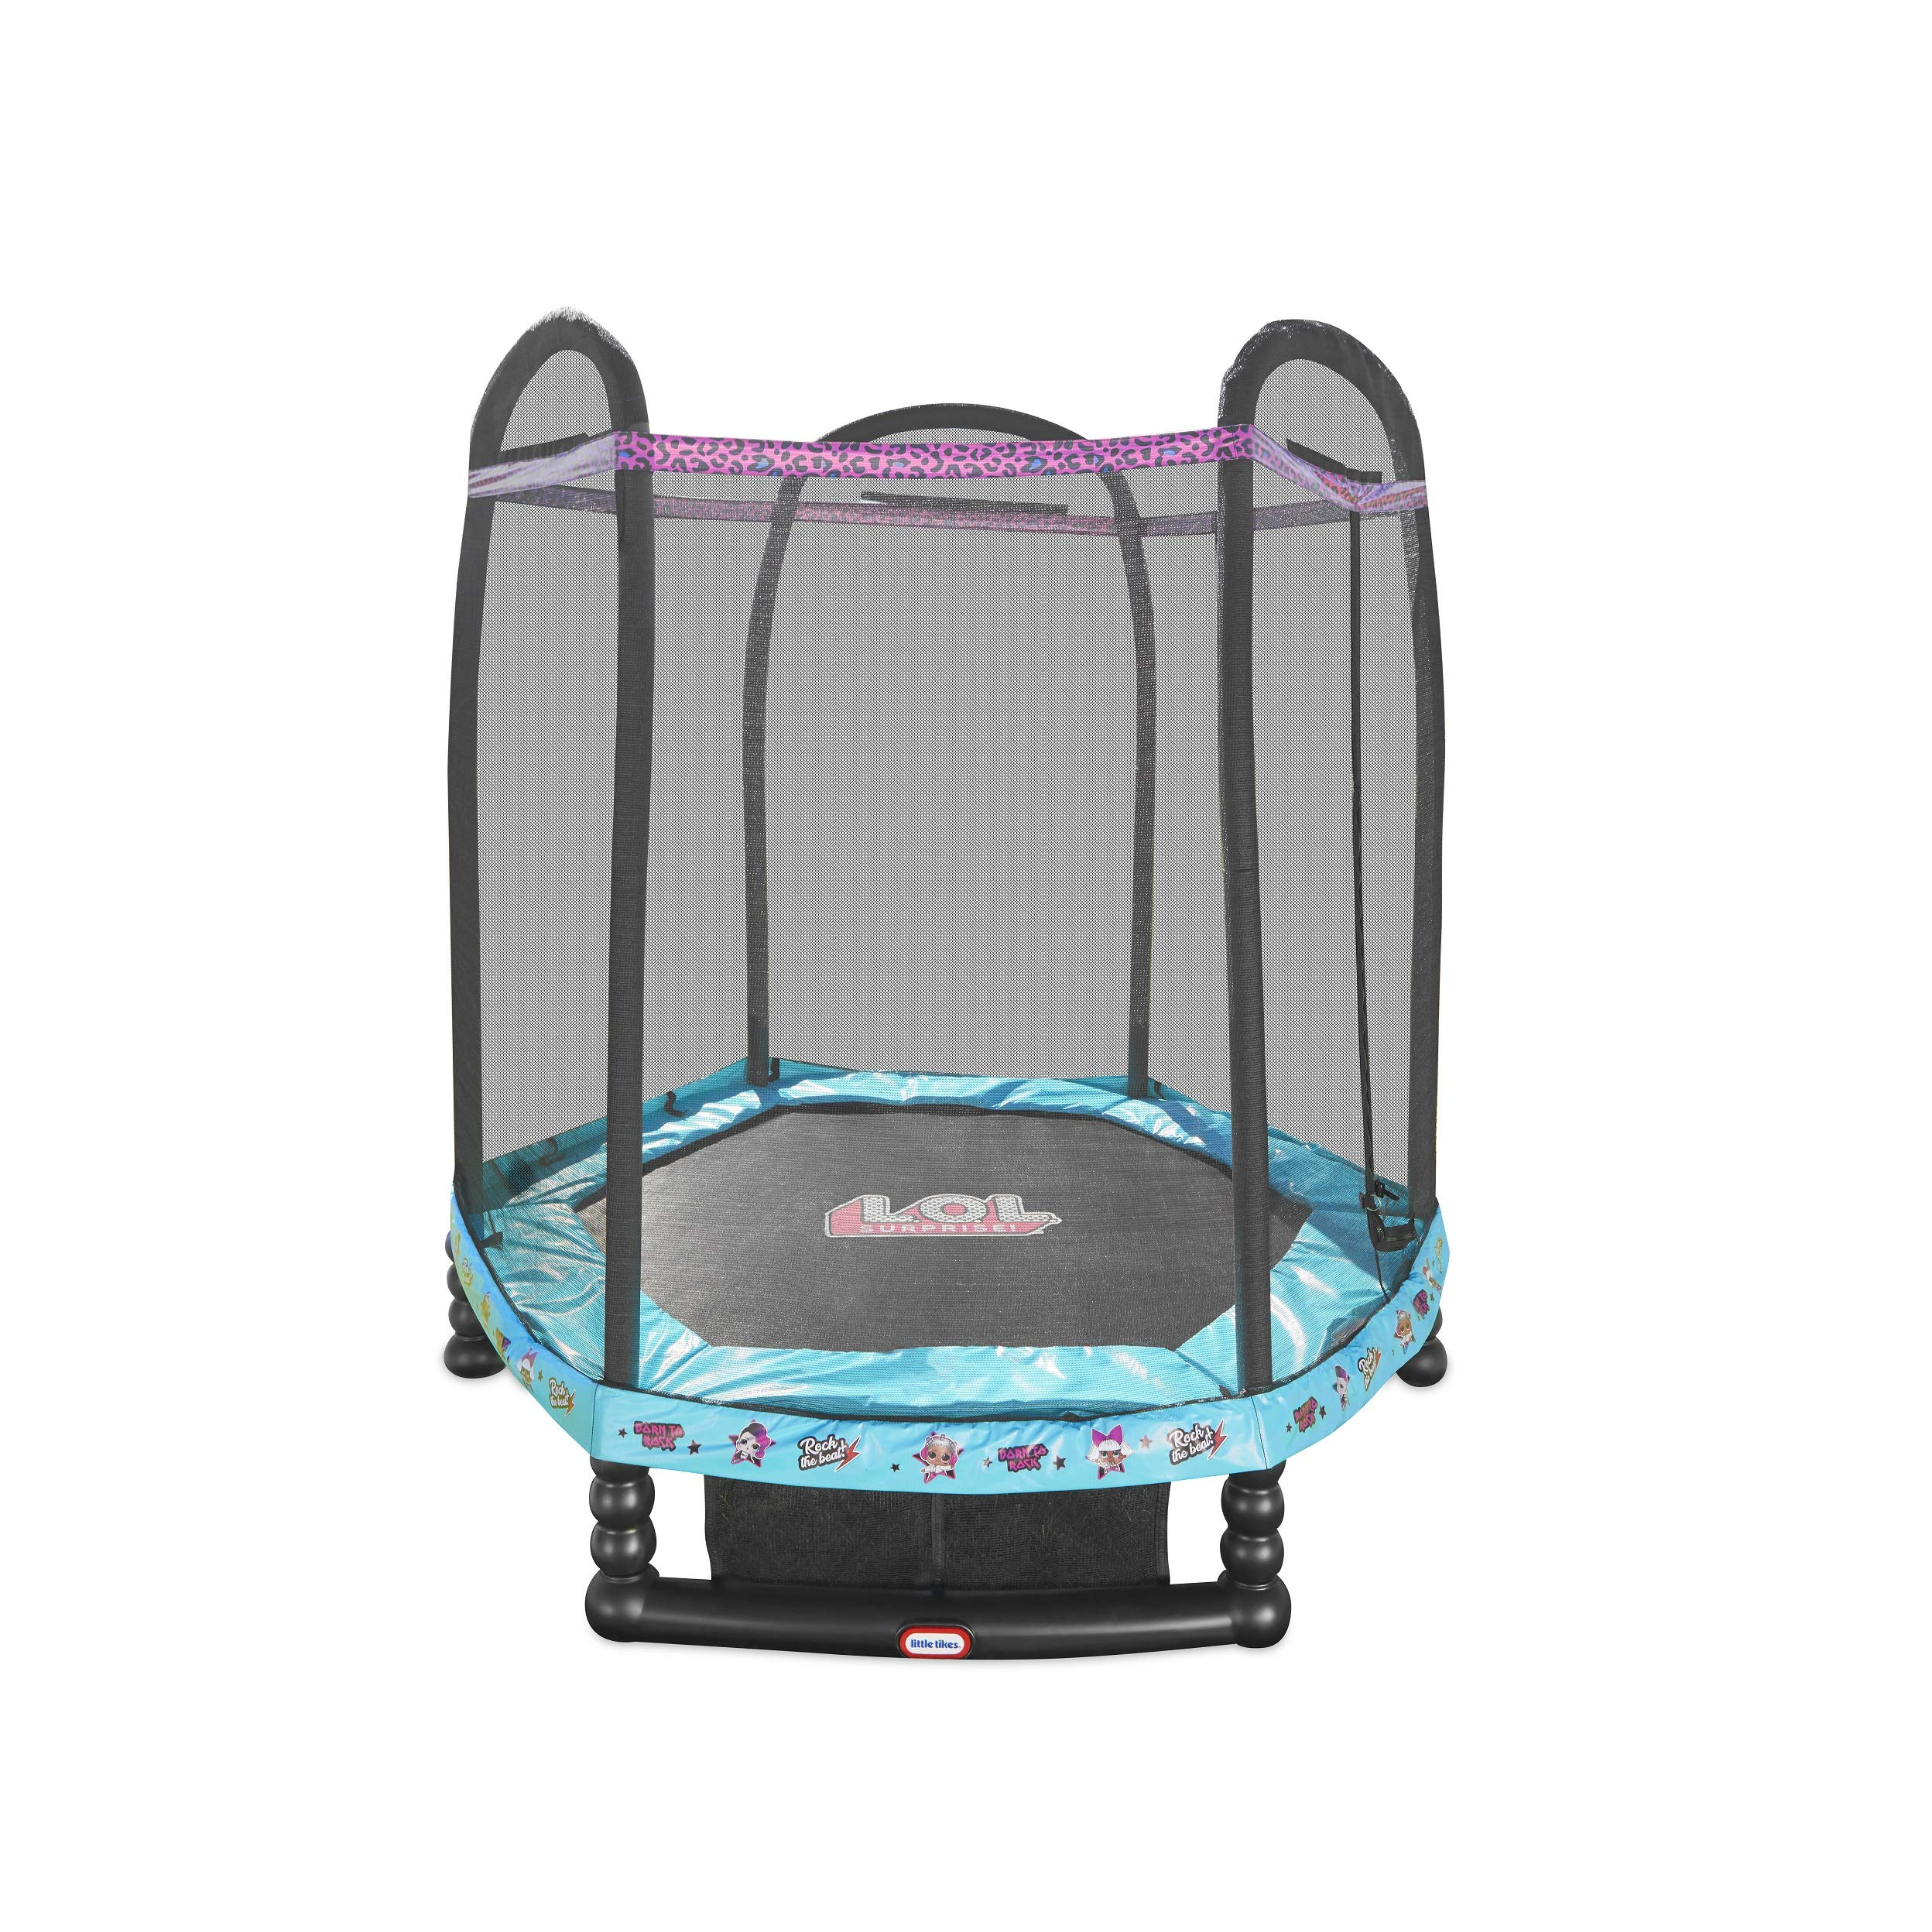 L.O.L. Surprise! 7' Enclosed Trampoline with Safety Net by L.O.L. Surprise!